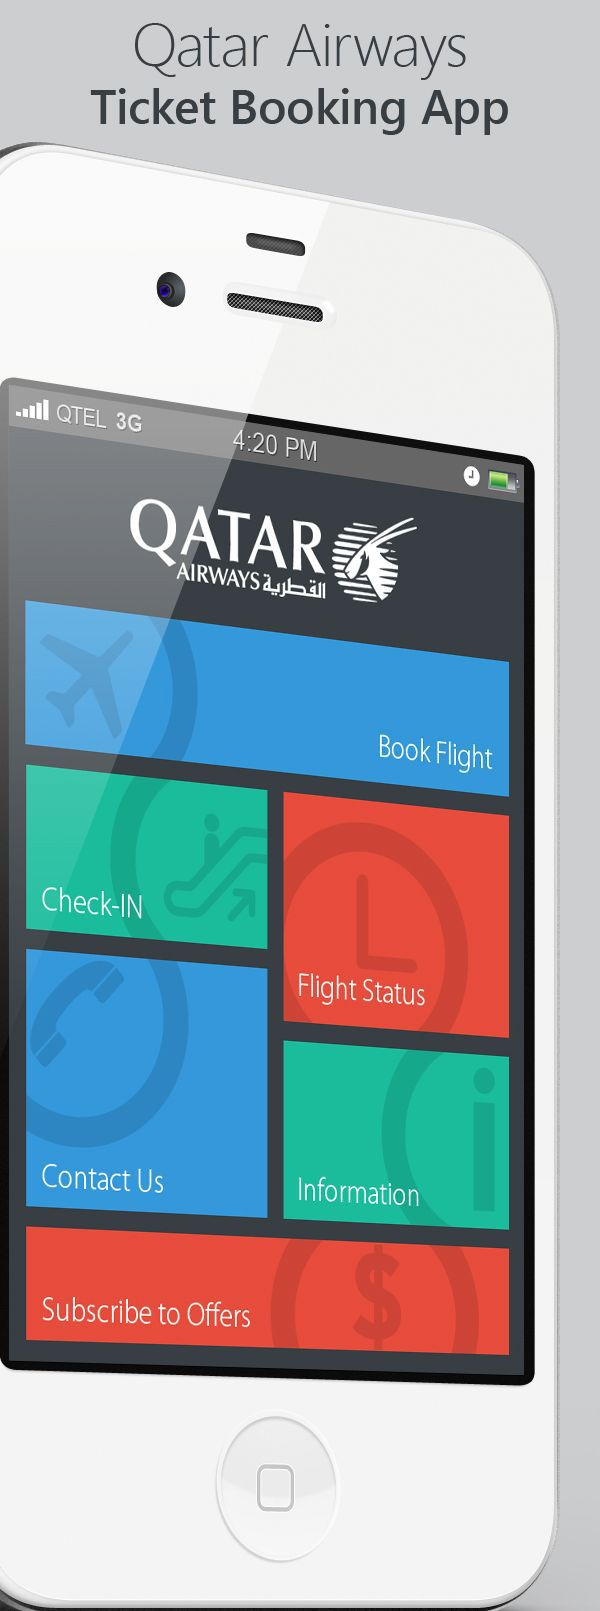 Qatar Airways Ticket Booking App by Amol Hadkar